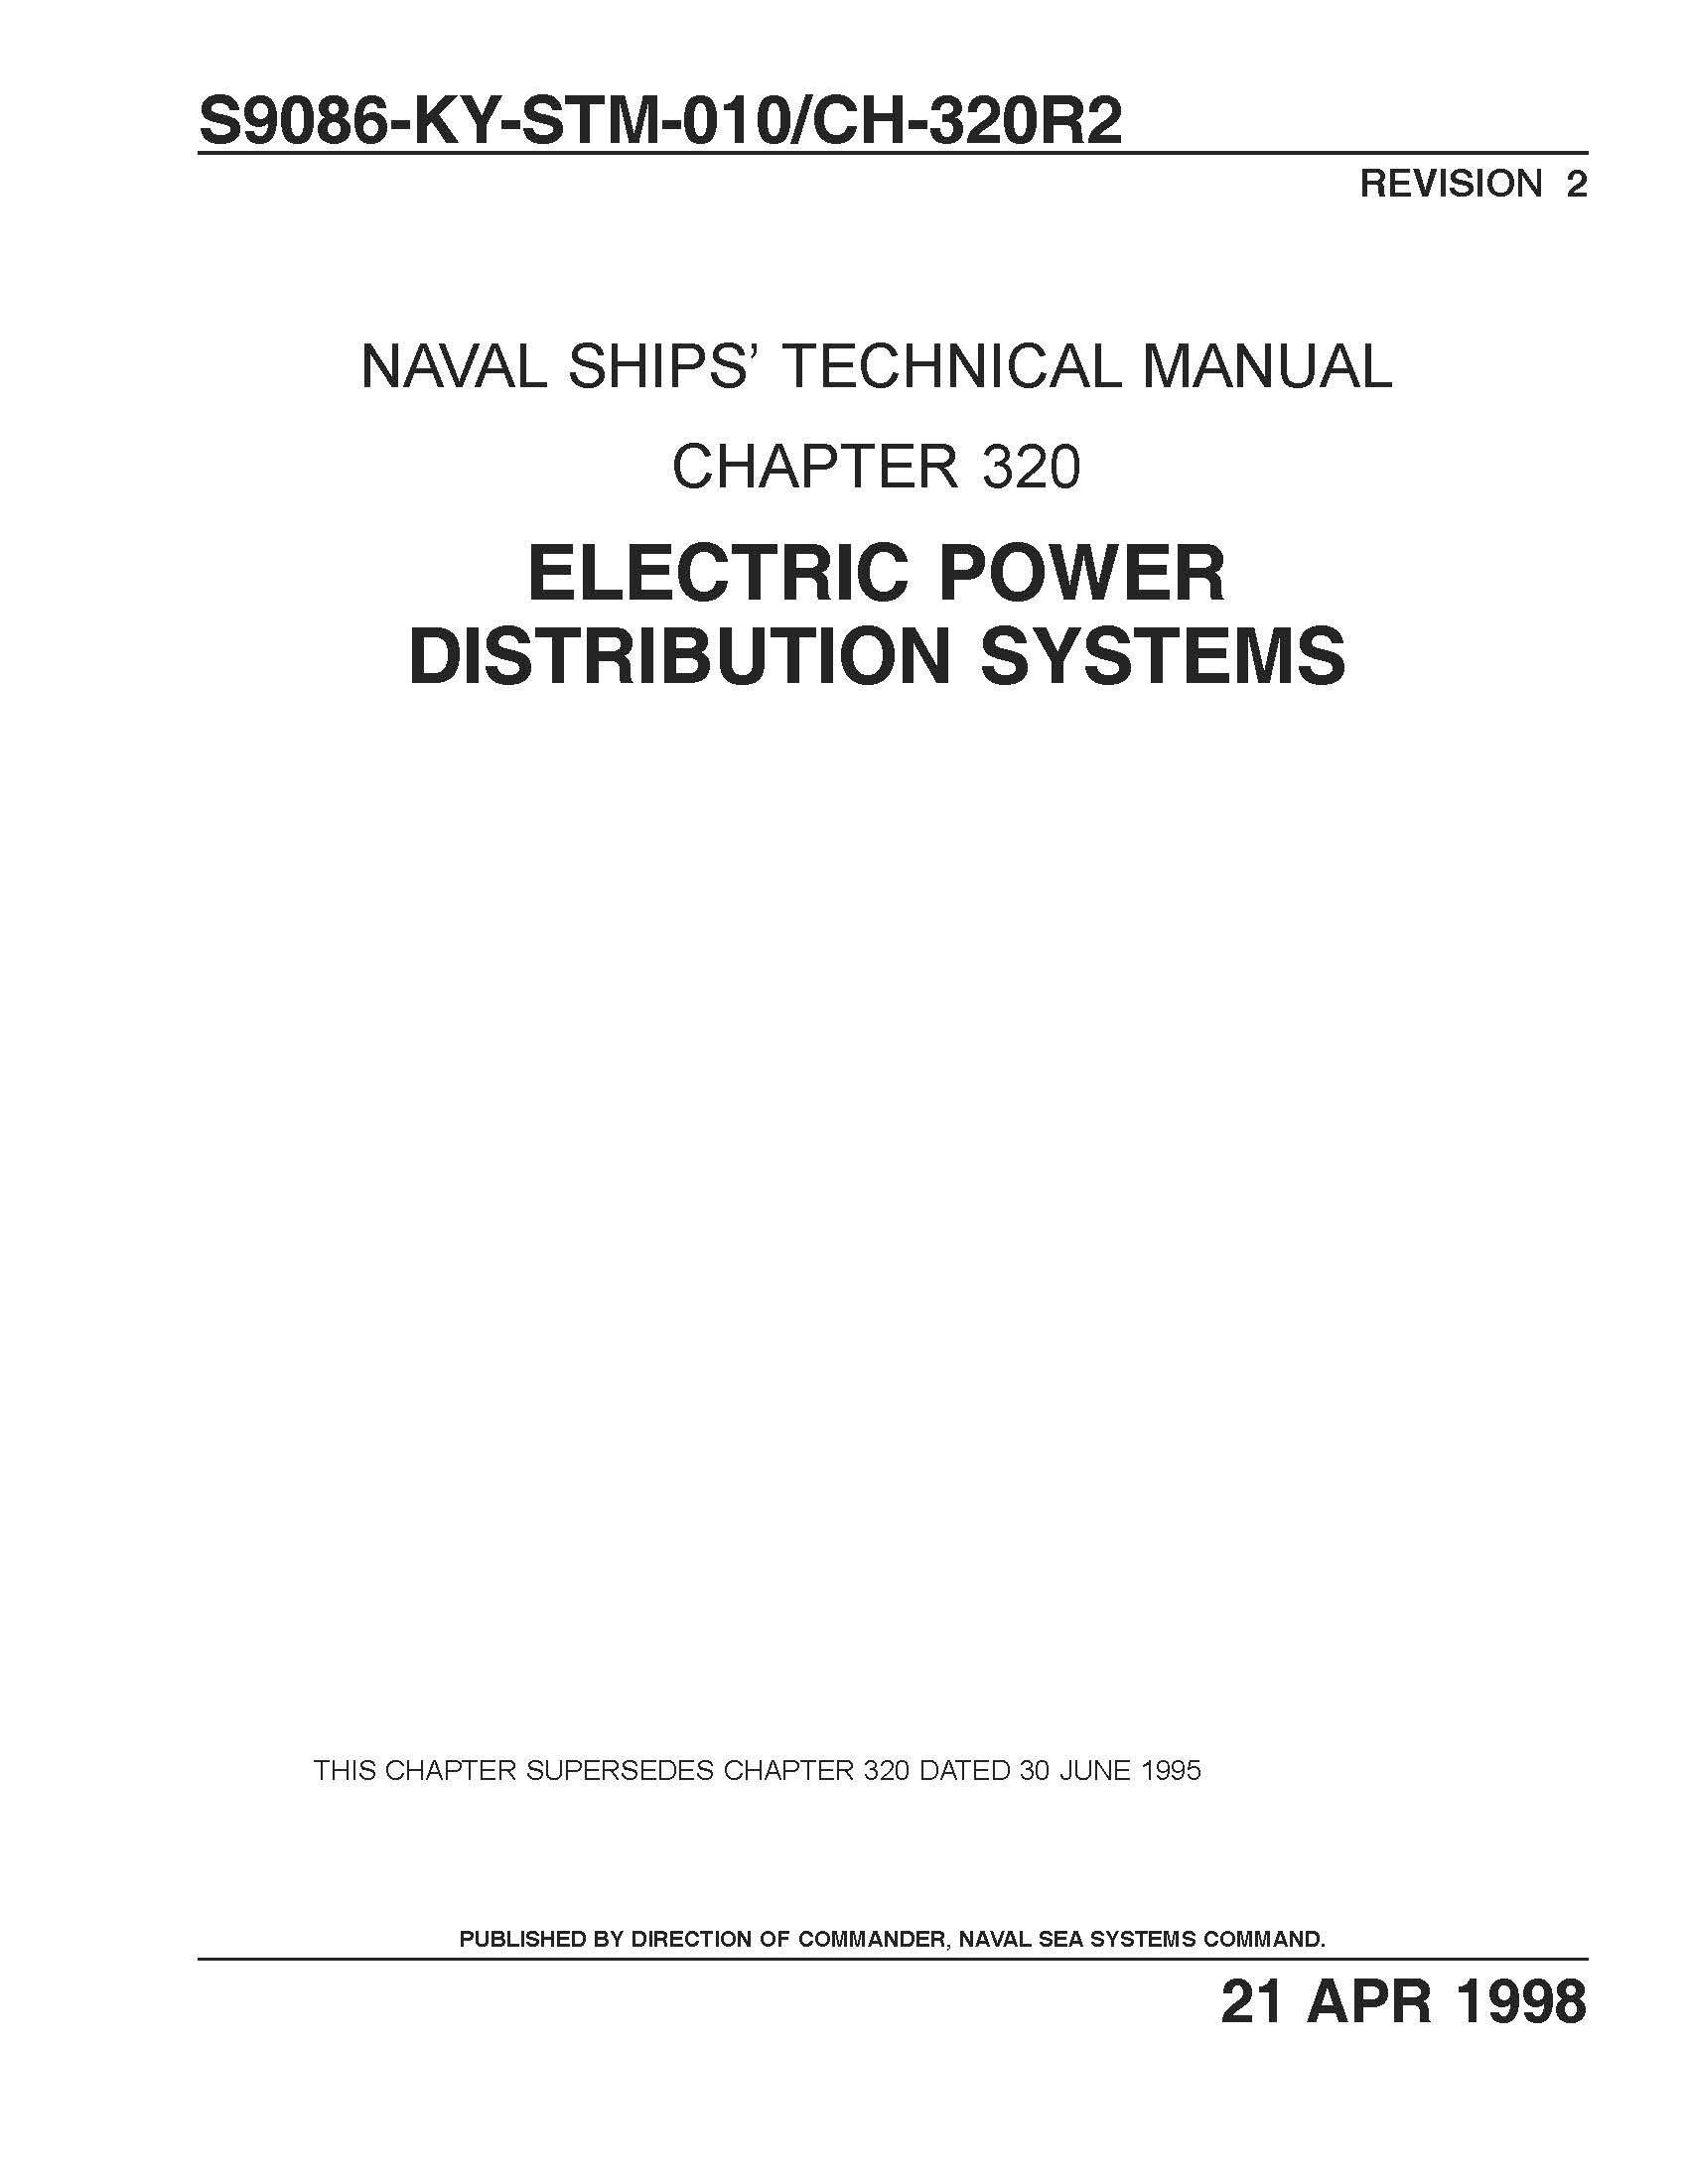 Electric Power Distribution Systems Chapter 320 NAVAL SHIPS